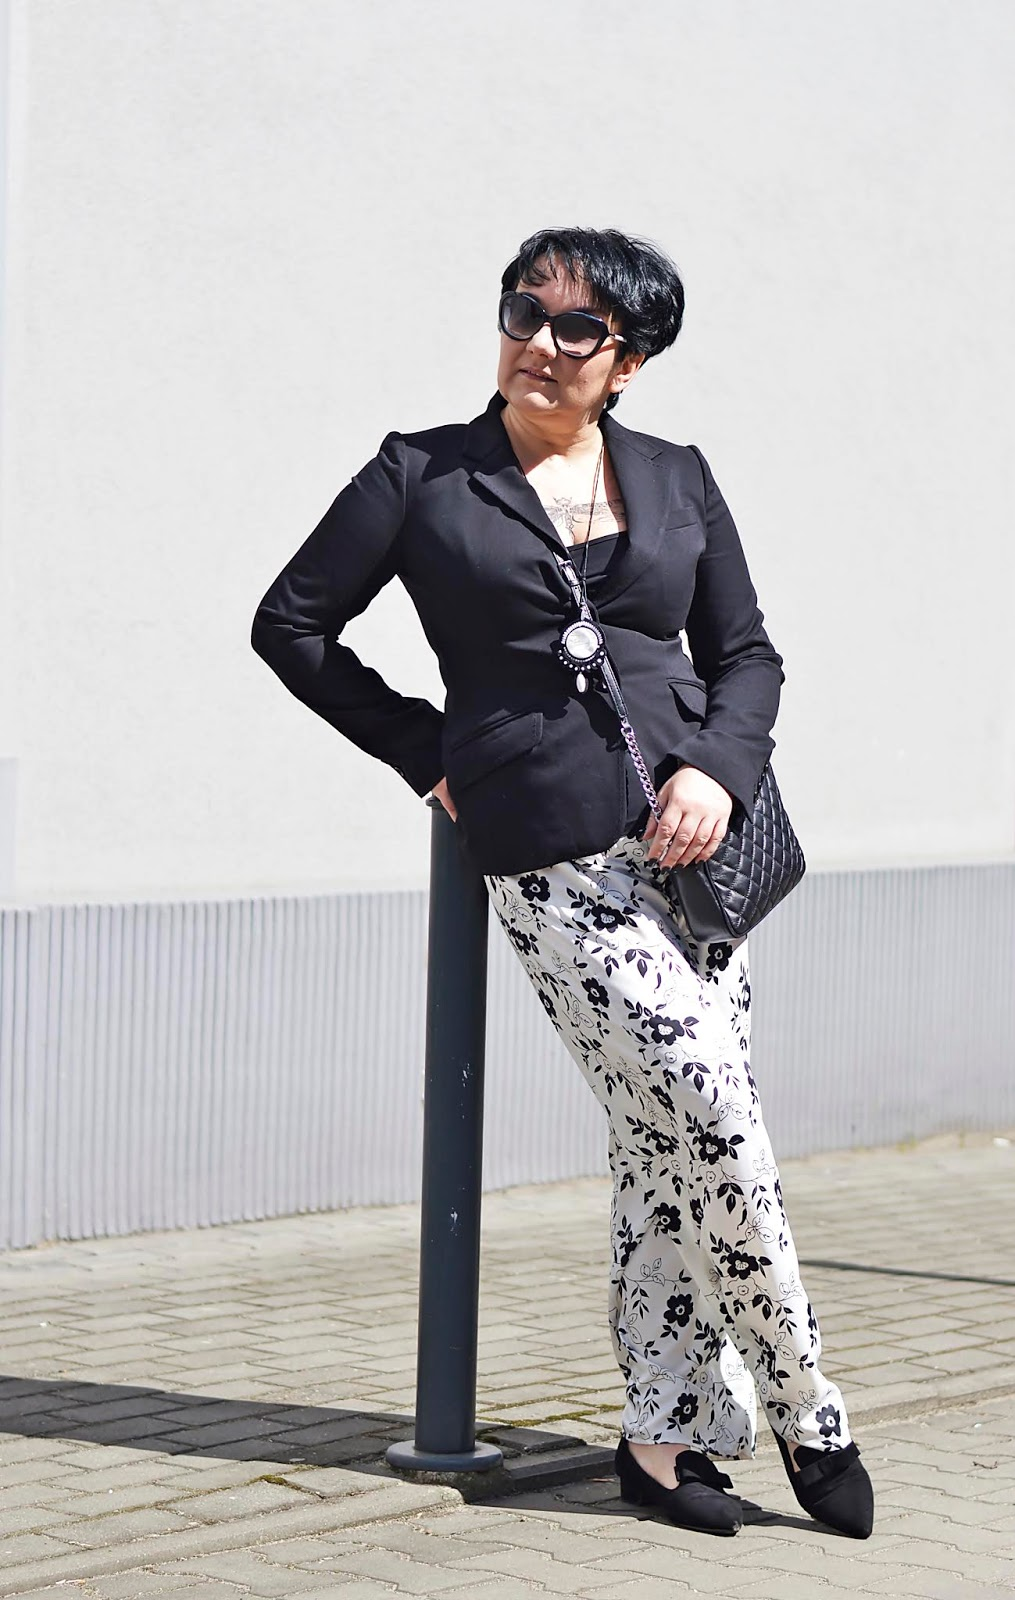 H&M back jacket, pajamas pants, black and white fashion